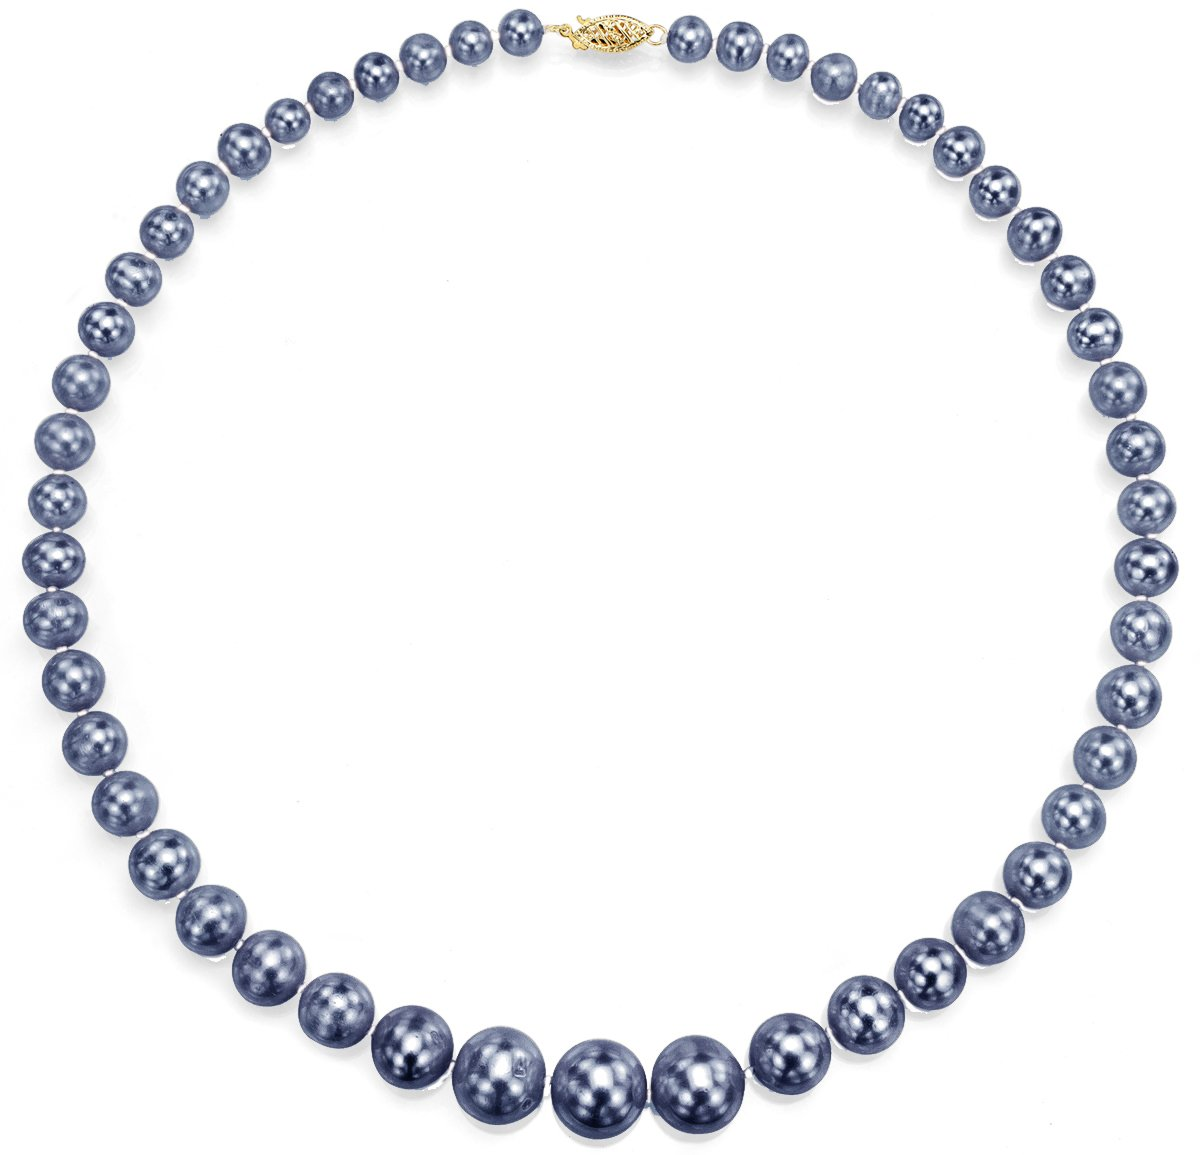 18K Yellow Gold Cultured Freshwatwer Black Pearl Necklaces for Teen Girls Graduated 6-11mm 18 inch by La Regis Jewelry (Image #1)